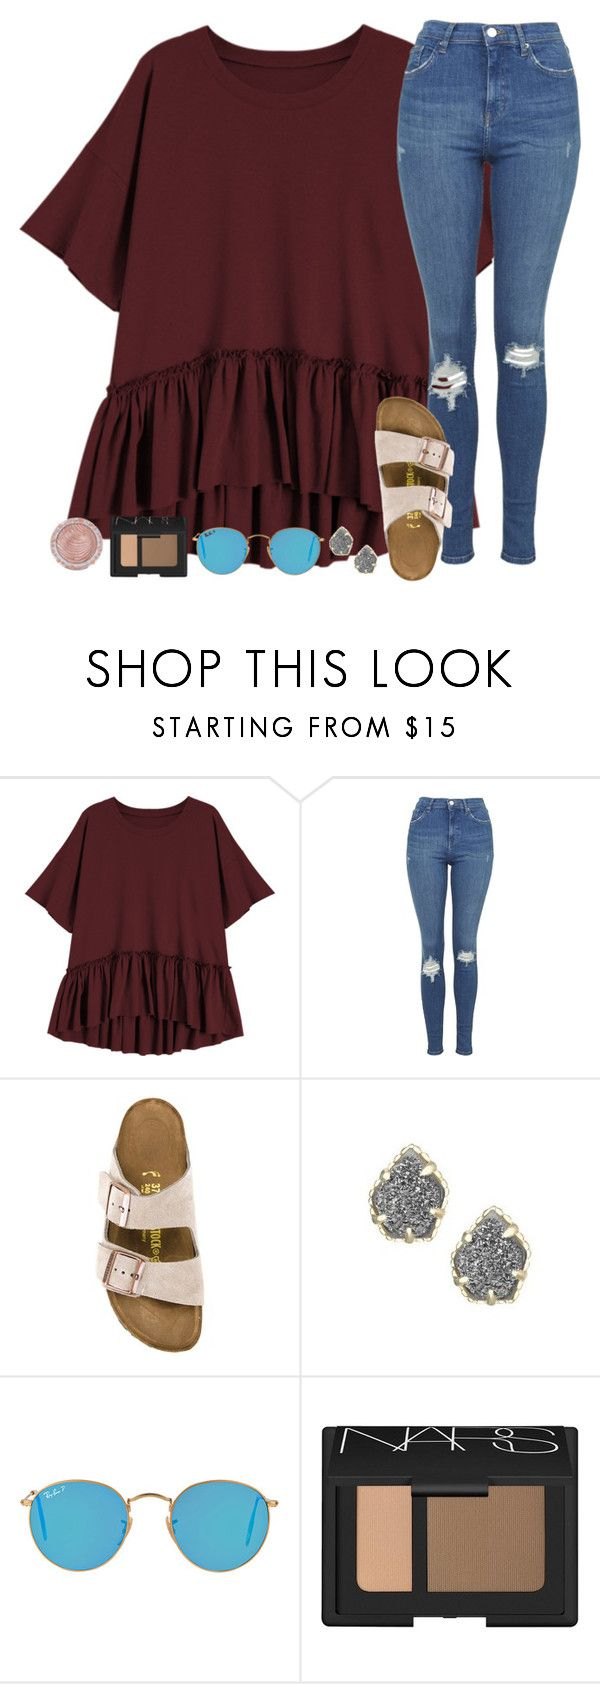 """""""Sorry I've been inactive!"""" by mississippigirl-1 ❤ liked on Polyvore featuring Topshop, Birkenstock, Kendra Scott, Ray-Ban, NARS Cosmetics and Charlotte Russe"""